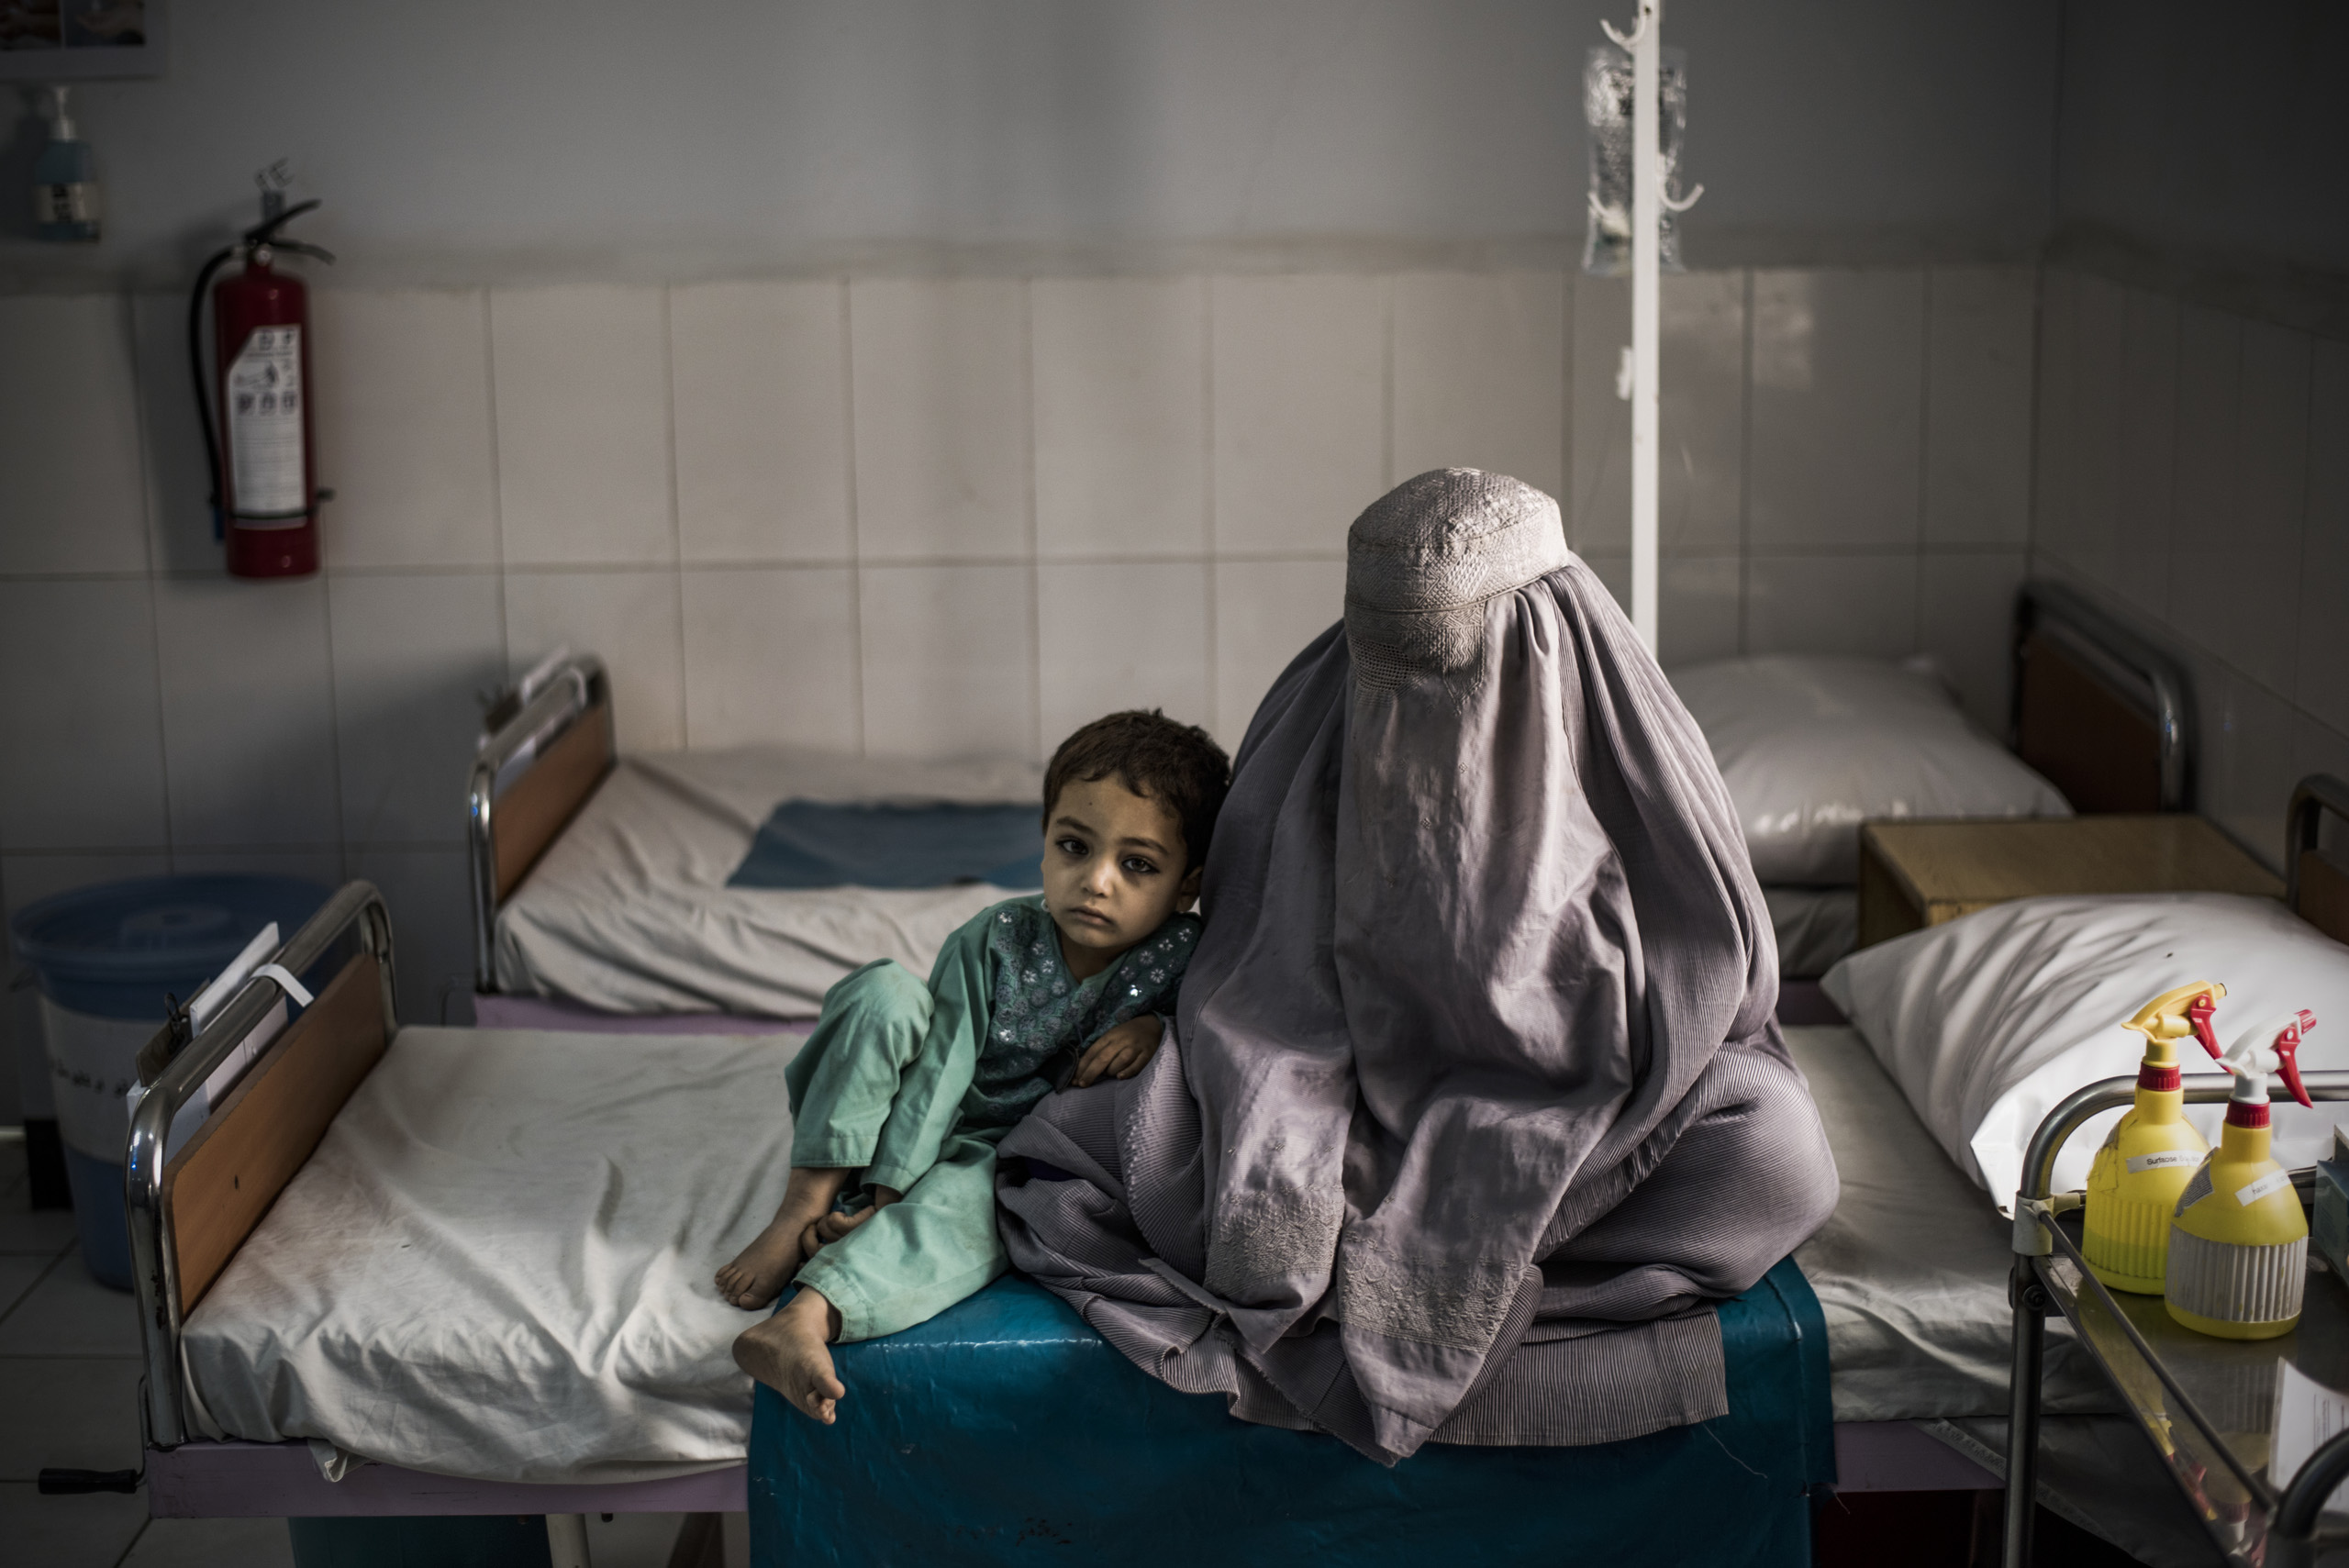 The female emergency room observation room which is run by Doctors Without Borders, and is one of their biggest hospitals in the world, Lashkar Gah, Helmand, Afghanistan, June 2016.